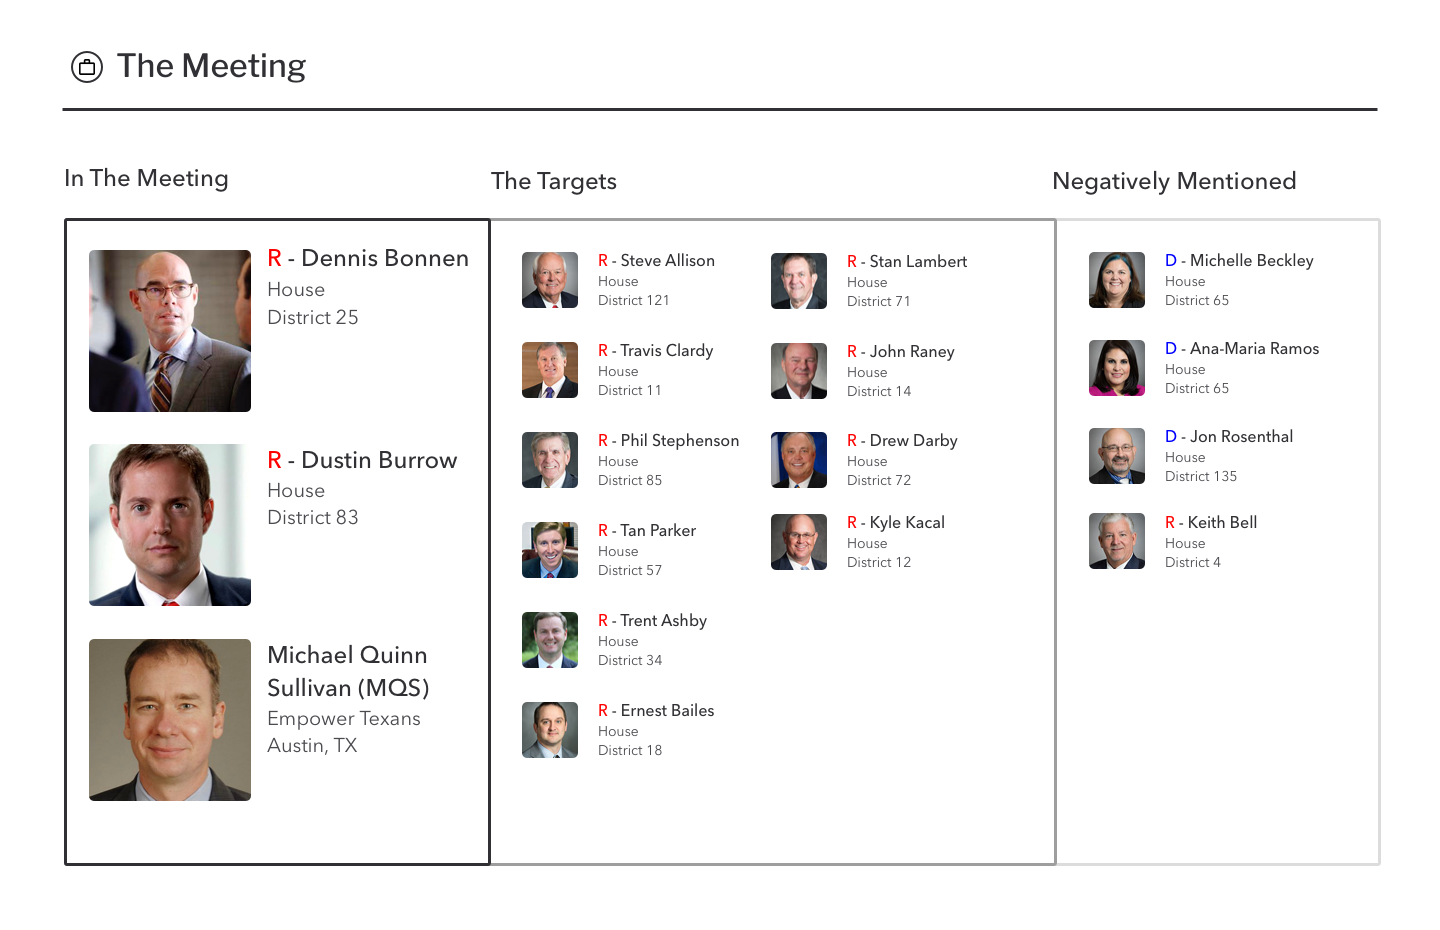 Texas House Speaker Dennis Bonnen, former GOP Caucus Chairman  Dustin Burrows  (who recently resigned), and Empower Texans' Director MQS had a meeting. Allegedly, Burrows gave MQS a hit list of 10 Republicans at Bonnen's behest, and Bonnen talked trash about four lawmakers.